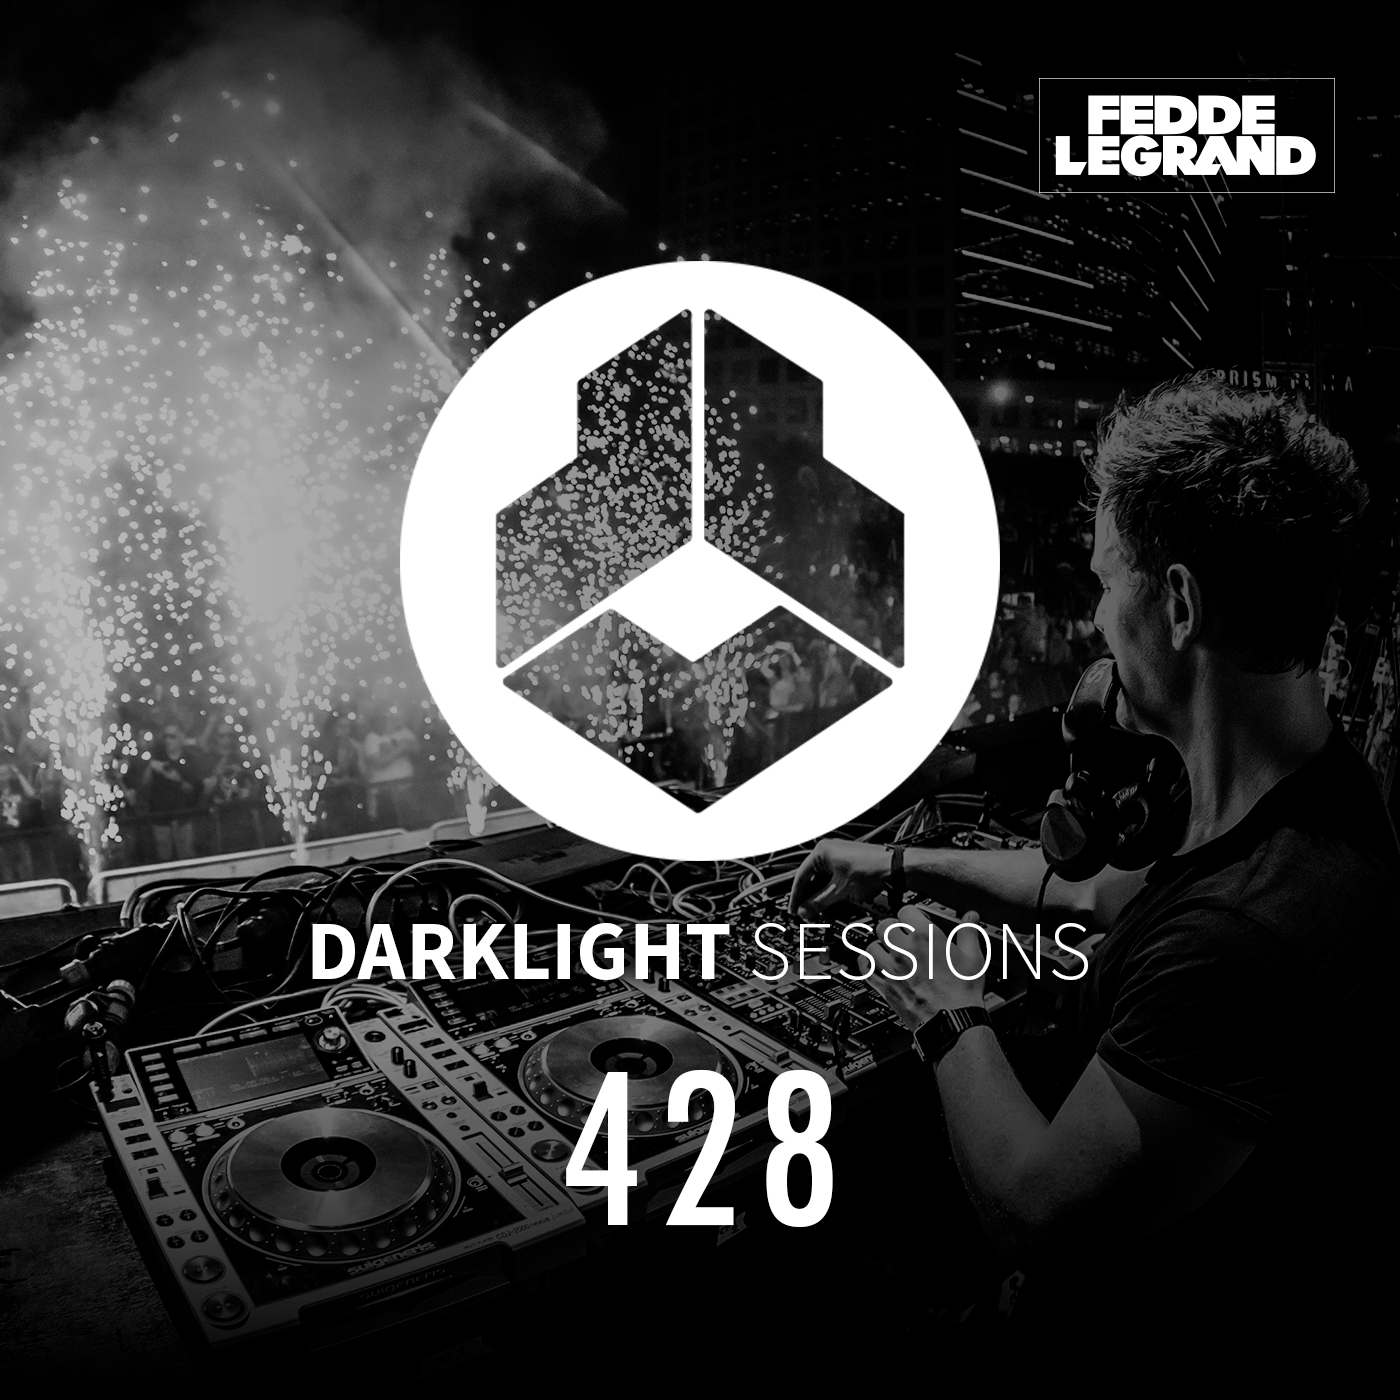 Darklight Sessions 428